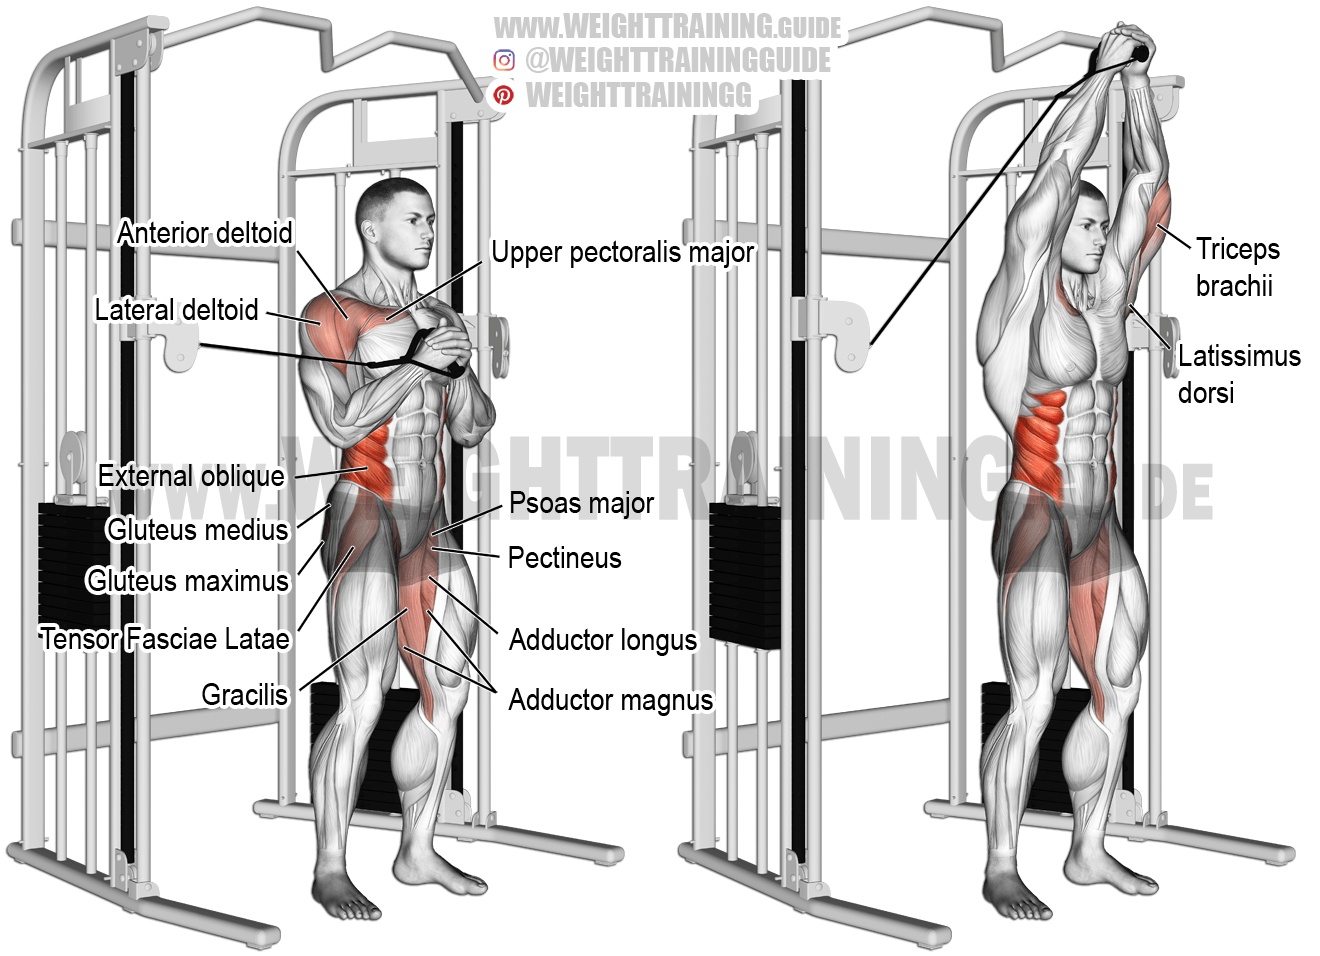 Cable Vertical Pallof Press Exercise Instructions And Video